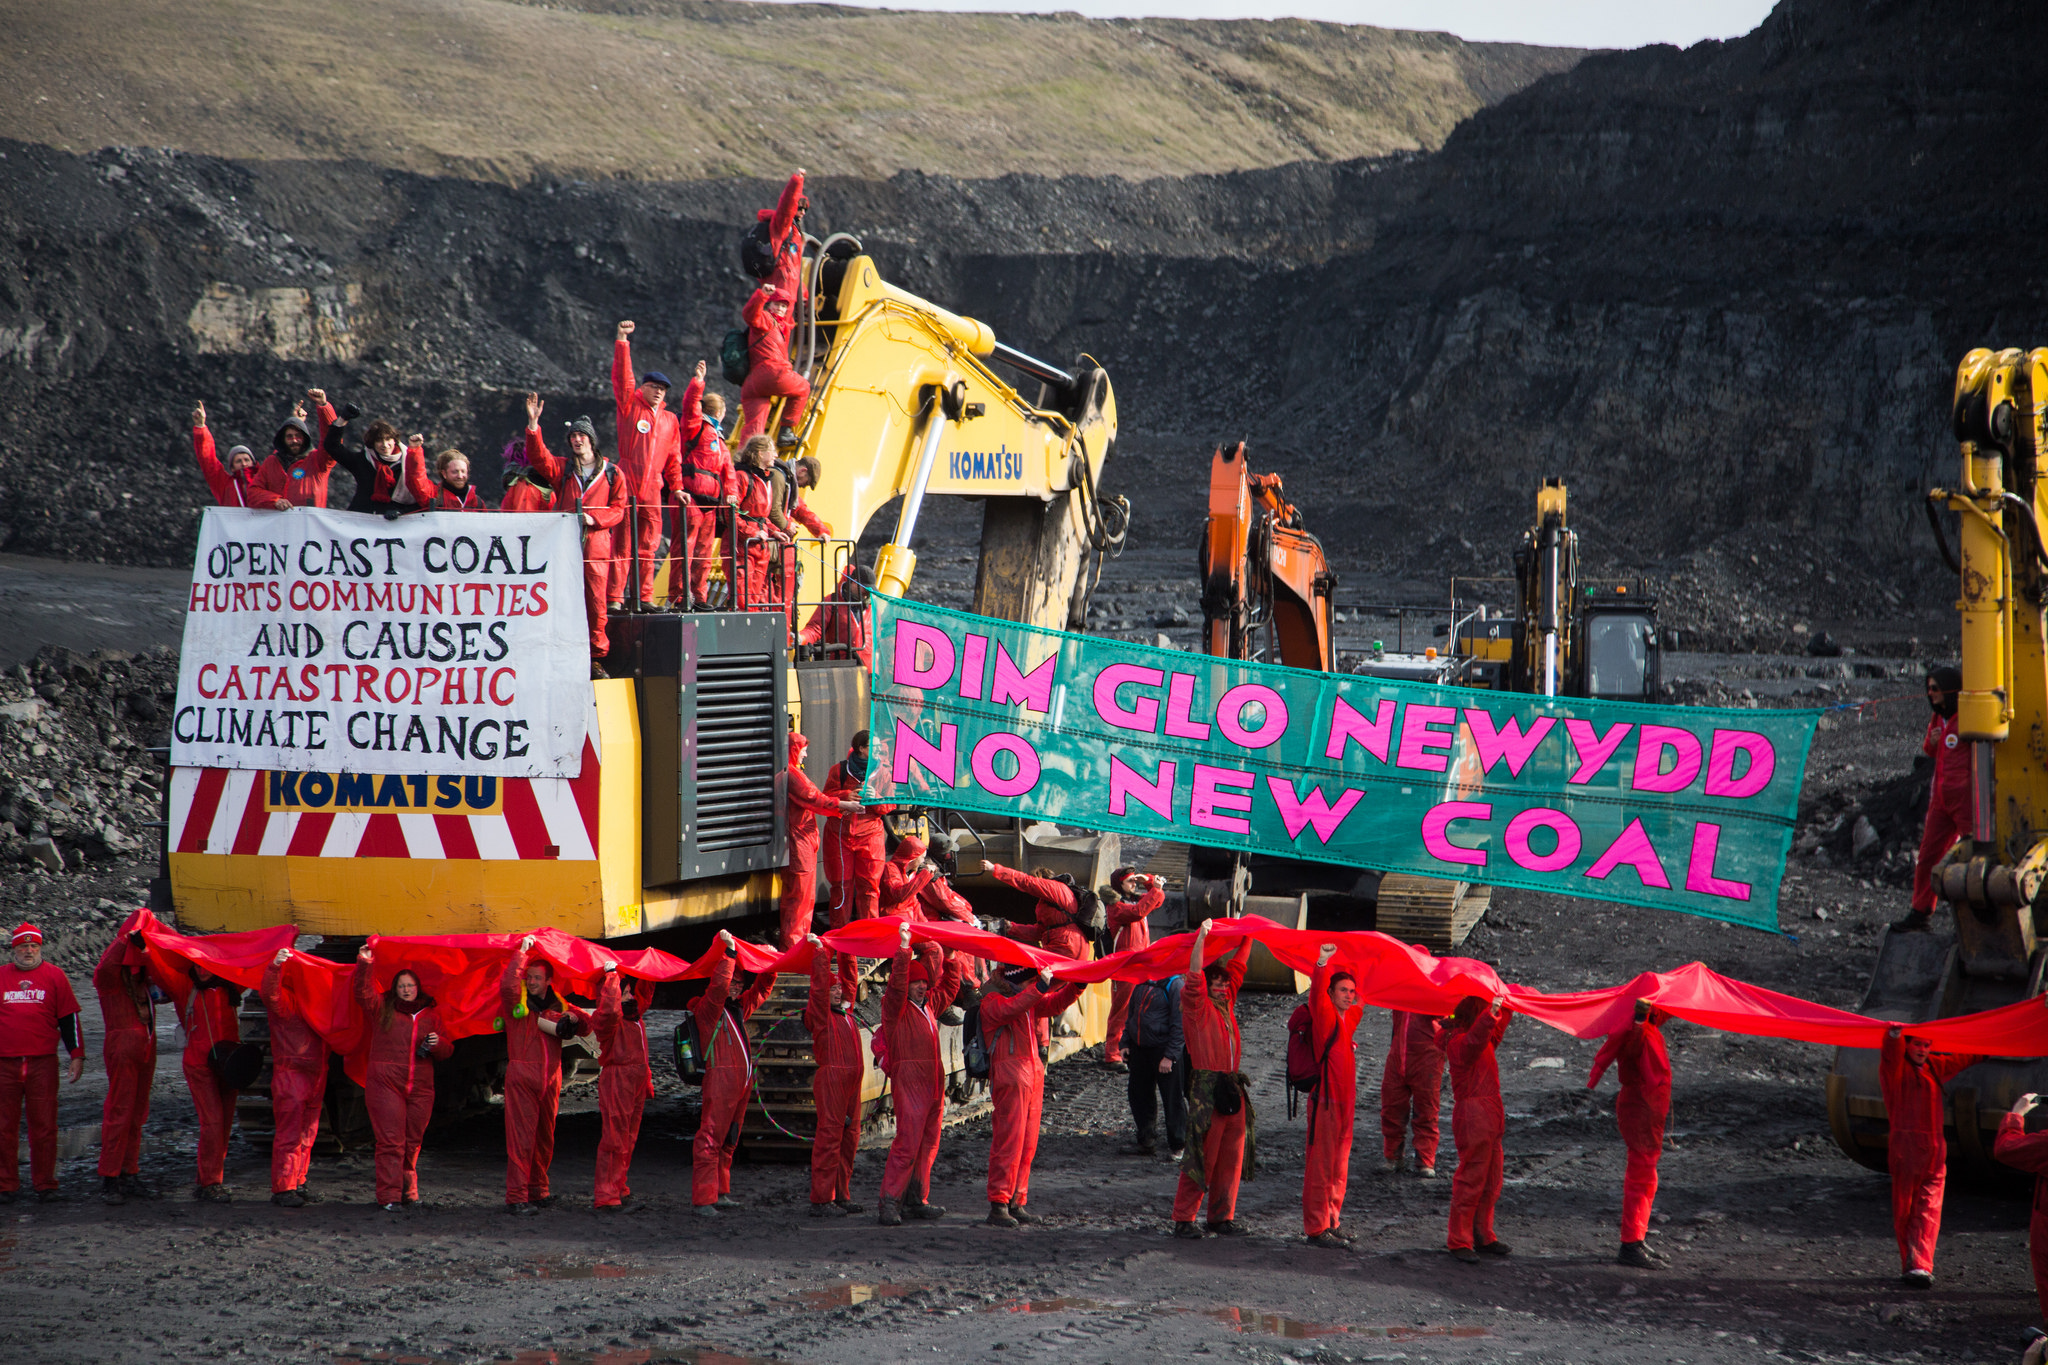 300 people shut down the UK's largest opencast coal mine Photographer: Kristian Buus